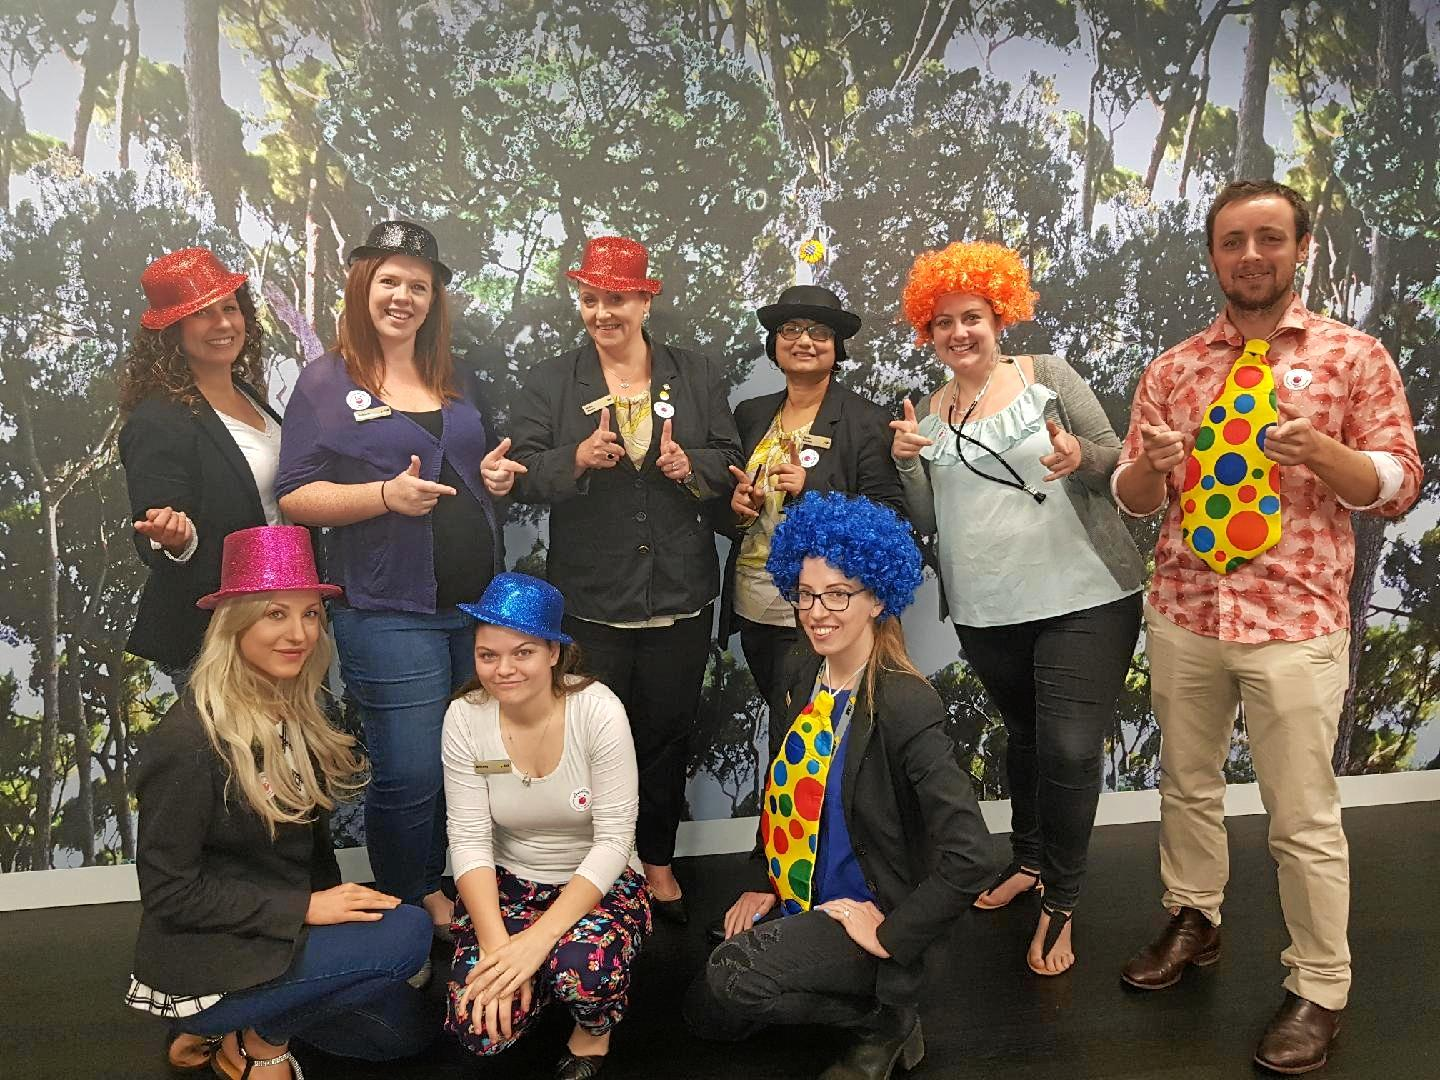 BRIGHTENING LIVES: Supporting the Clown Doctors are Commbank Toowoomba employees (back from left) Renee Hetherington, Michaela Rayner, Stella Martin, Sarita Krishna, Jodie Hammond, Sam Curtis, (front from left) Rebecca Aberdeen, Brittney Burns and Cassie Aberdeen.